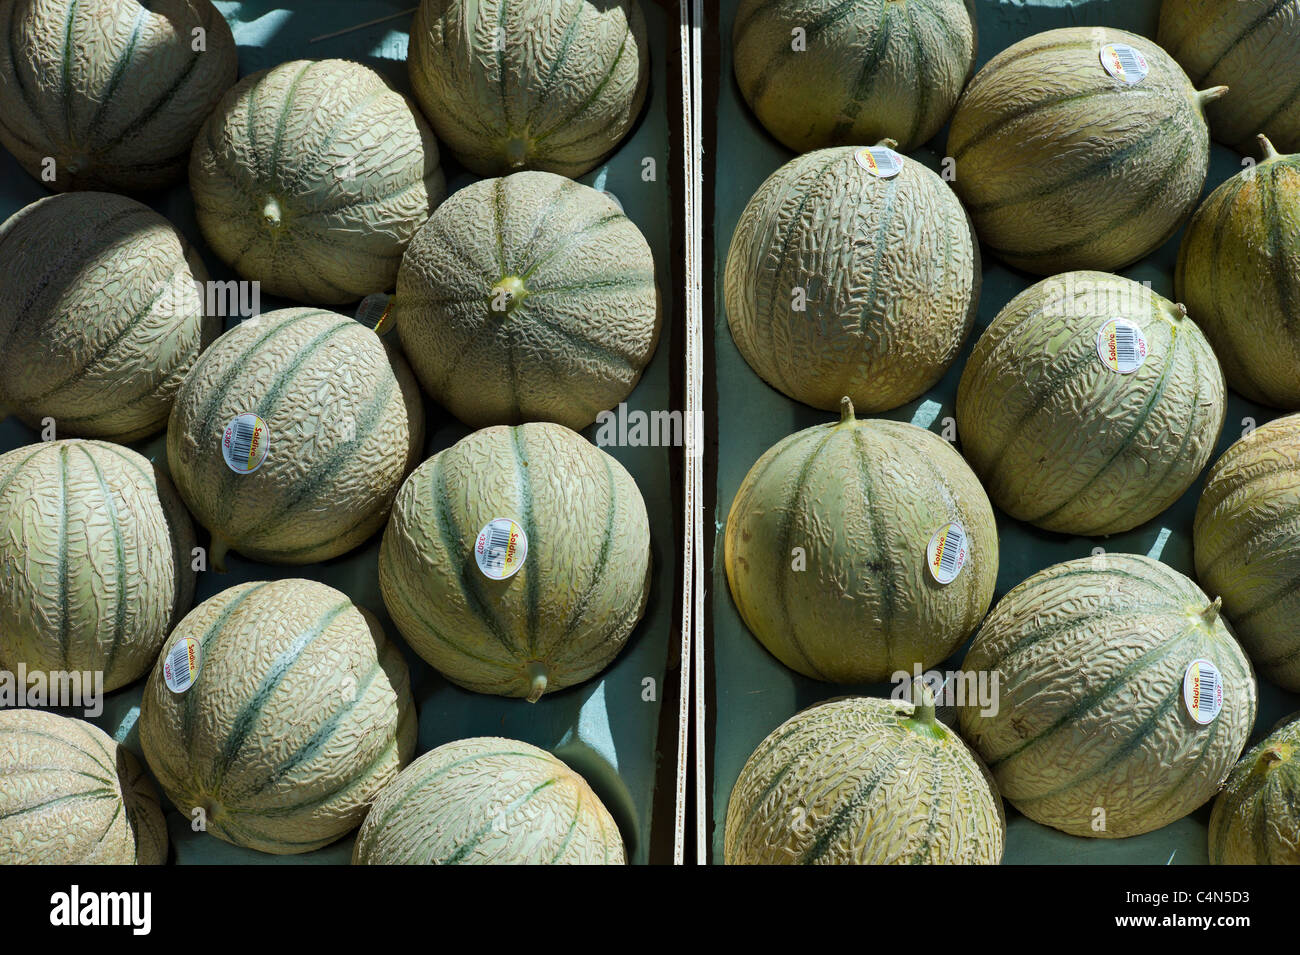 French Charentais melons on sale at food market at La Reole in Bordeaux region of France - Stock Image